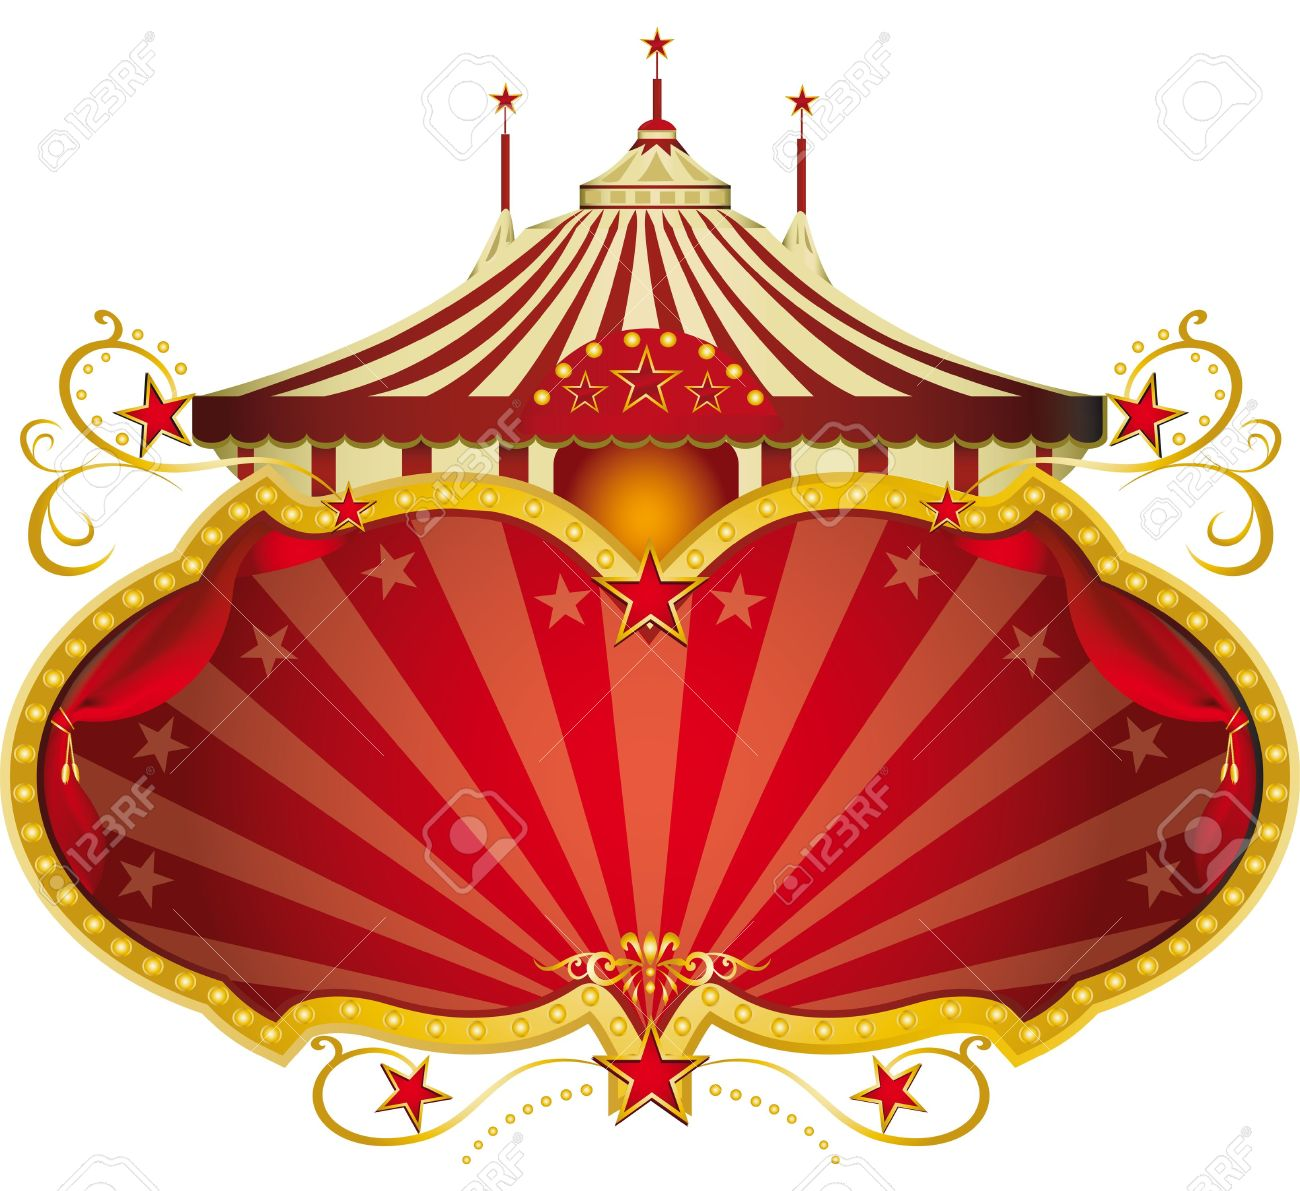 A circus frame with a big top and a large copy space for your message. Stock Vector - 12008660